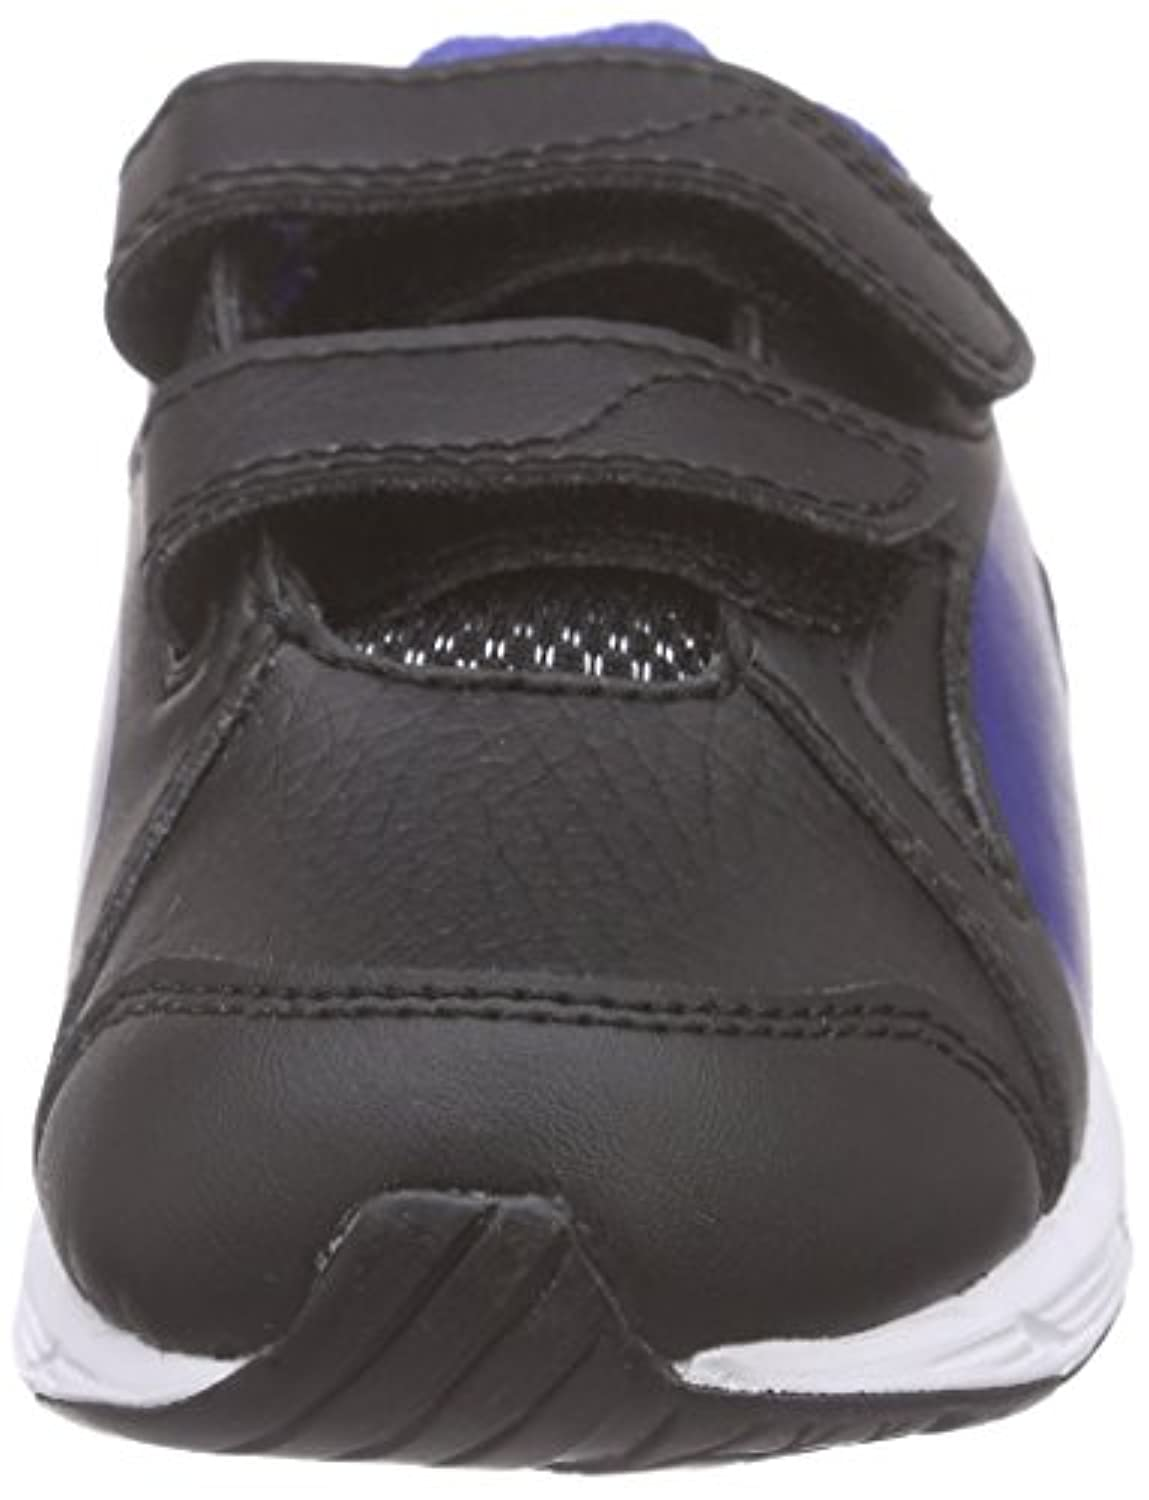 Puma Unisex Kids' Axis v4 SL V Inf Low-Top Sneakers Black Size: 1 UK